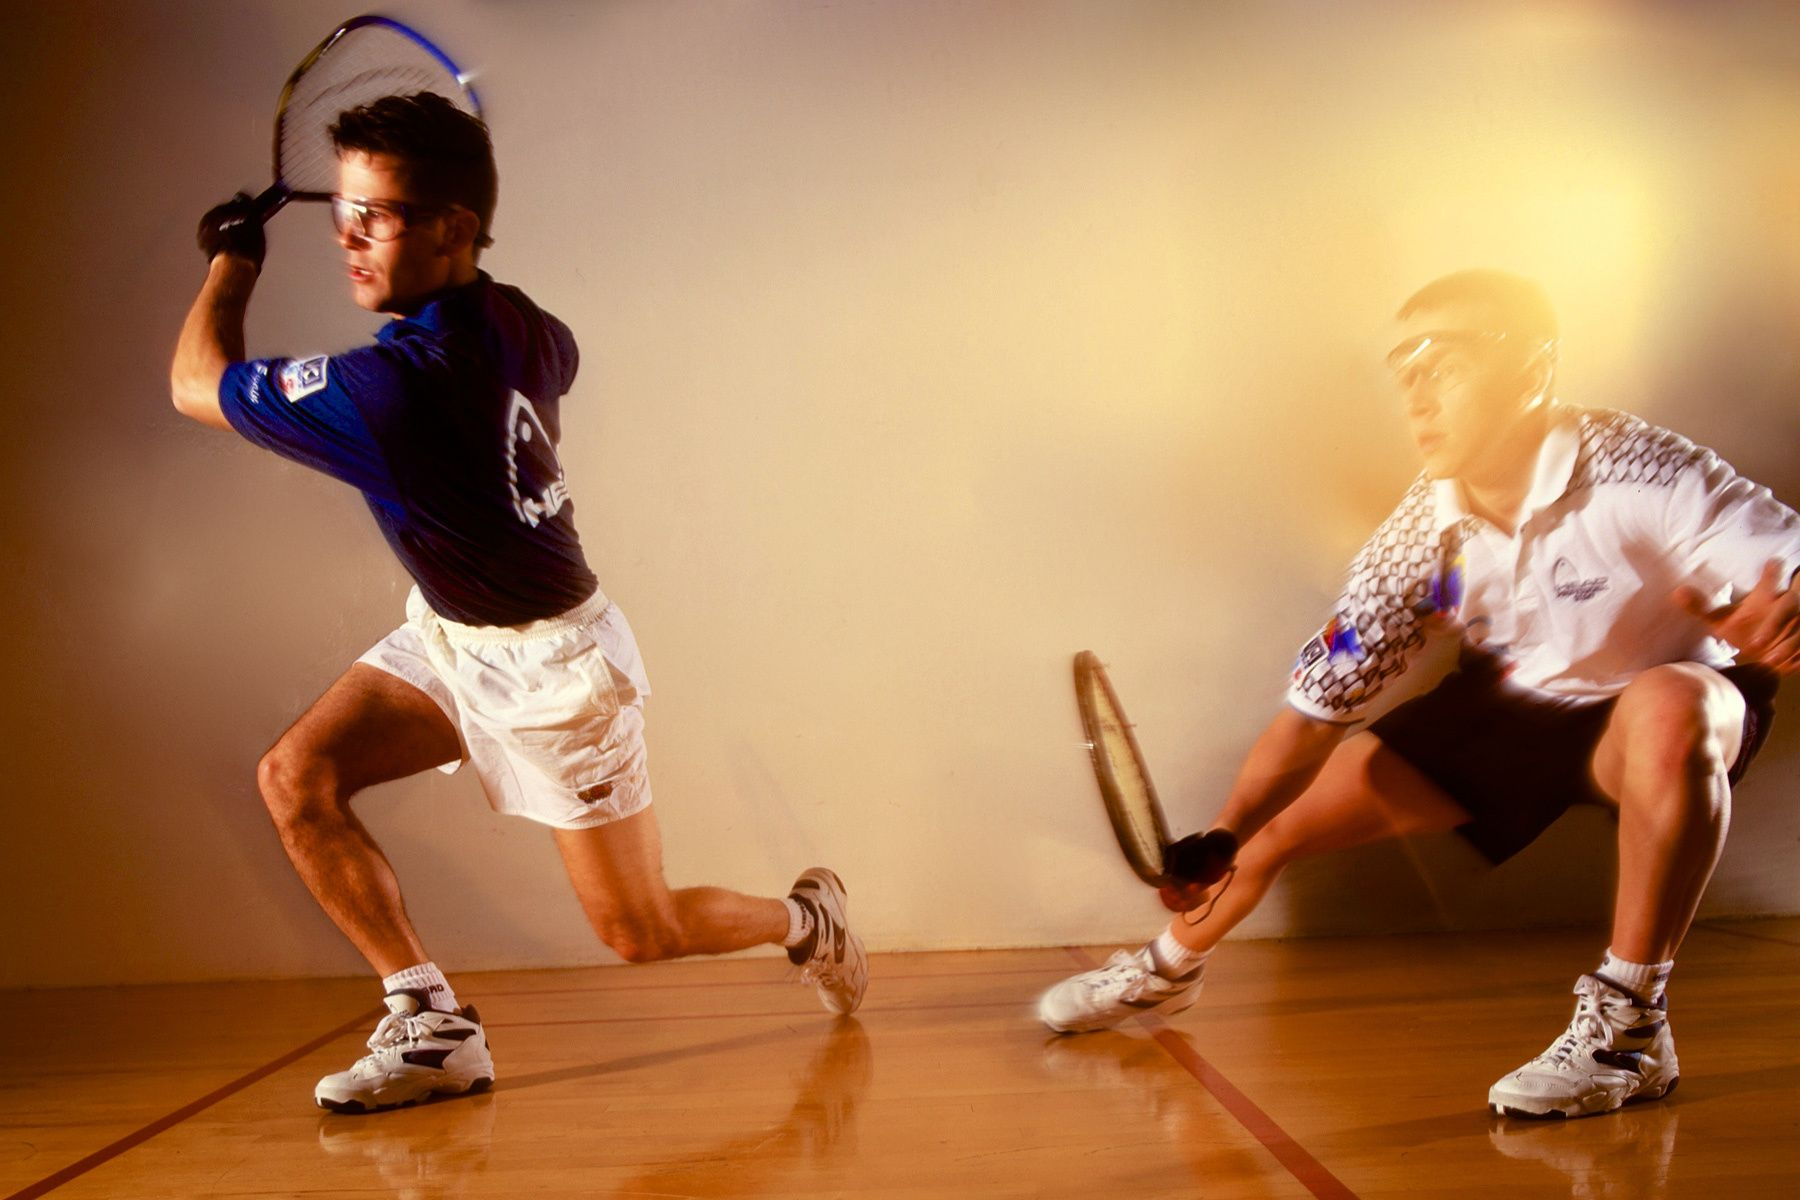 Cliff Swain & Sudsy Monchik_Top 2 Rated All-Time Professional Raquetball Players